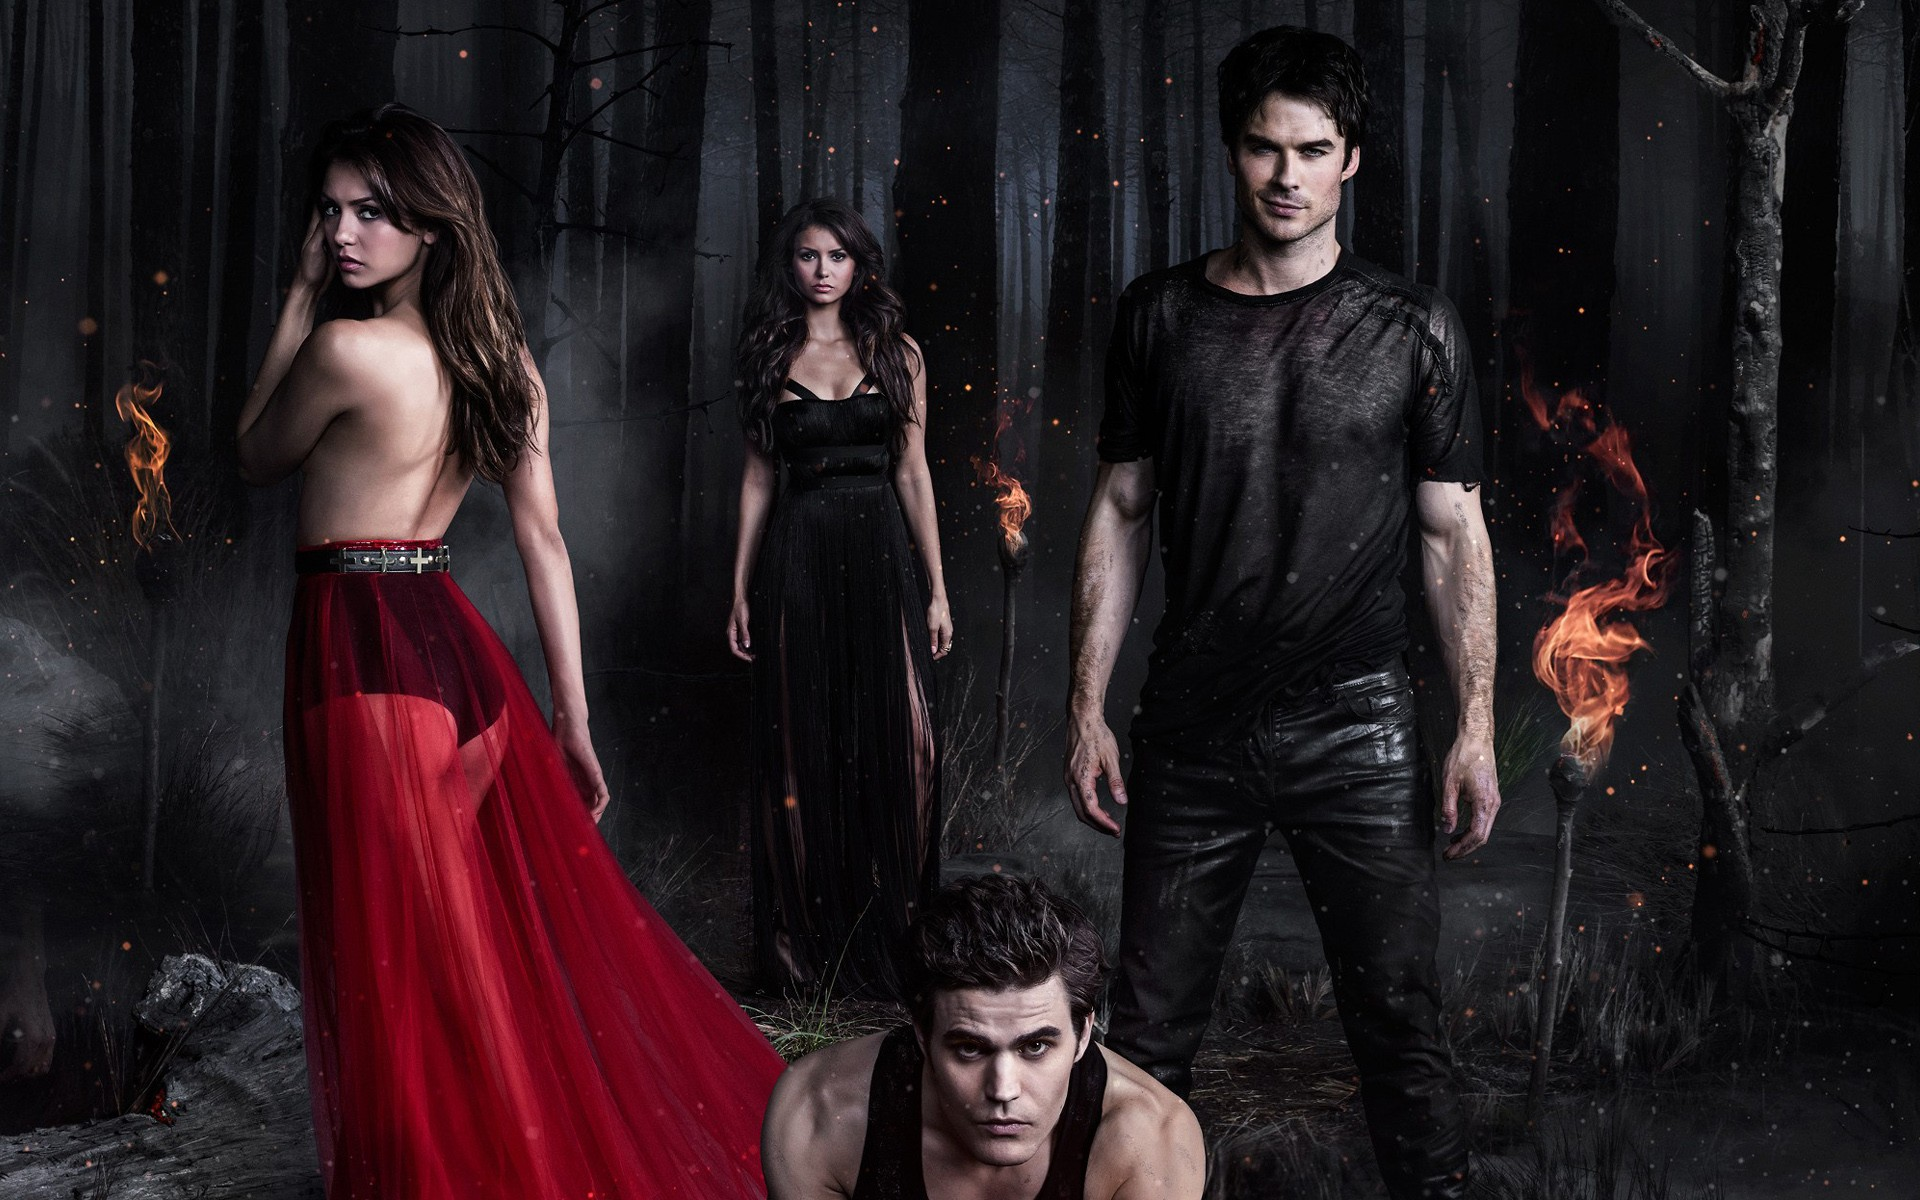 Wallpaper The Vampire Diaries: Vampire Diaries Wallpapers For Desktop